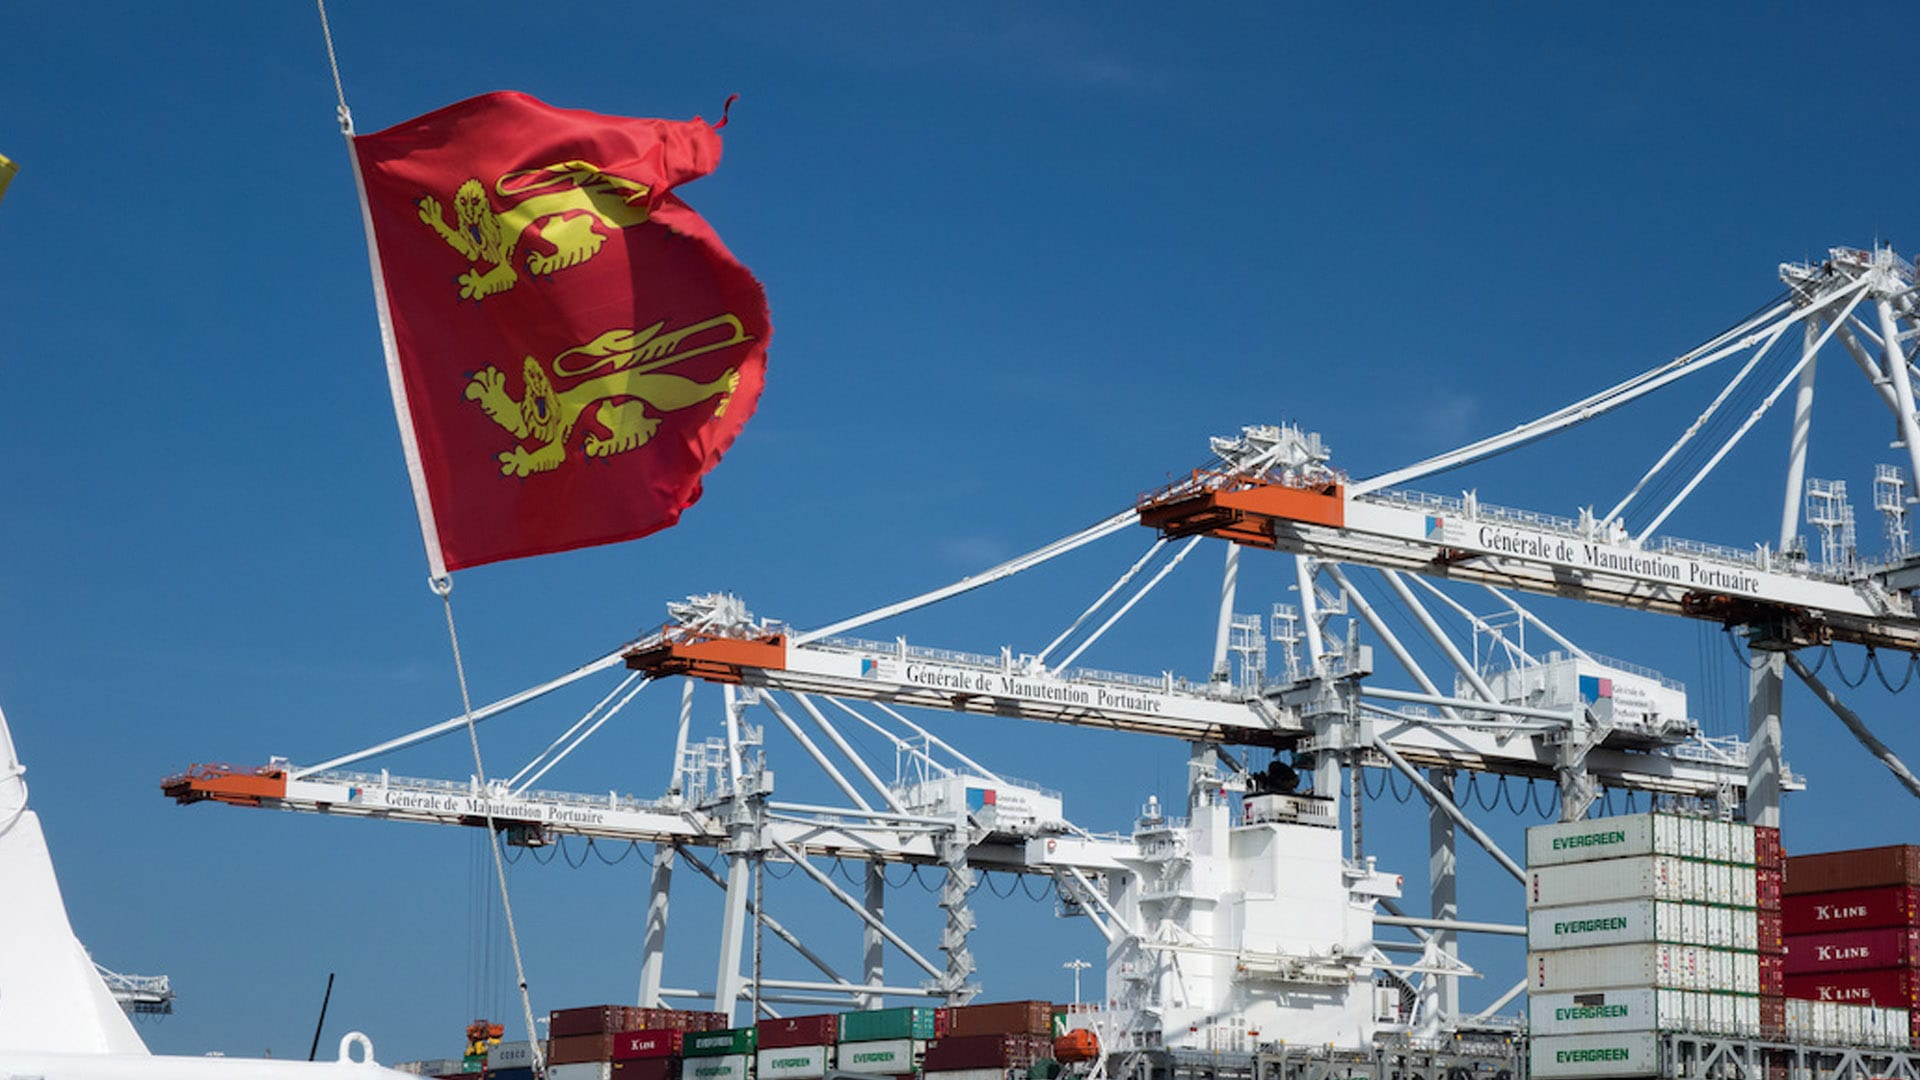 Airbus, Port of Le Havre Join Forces to Offer Port Operations Solution